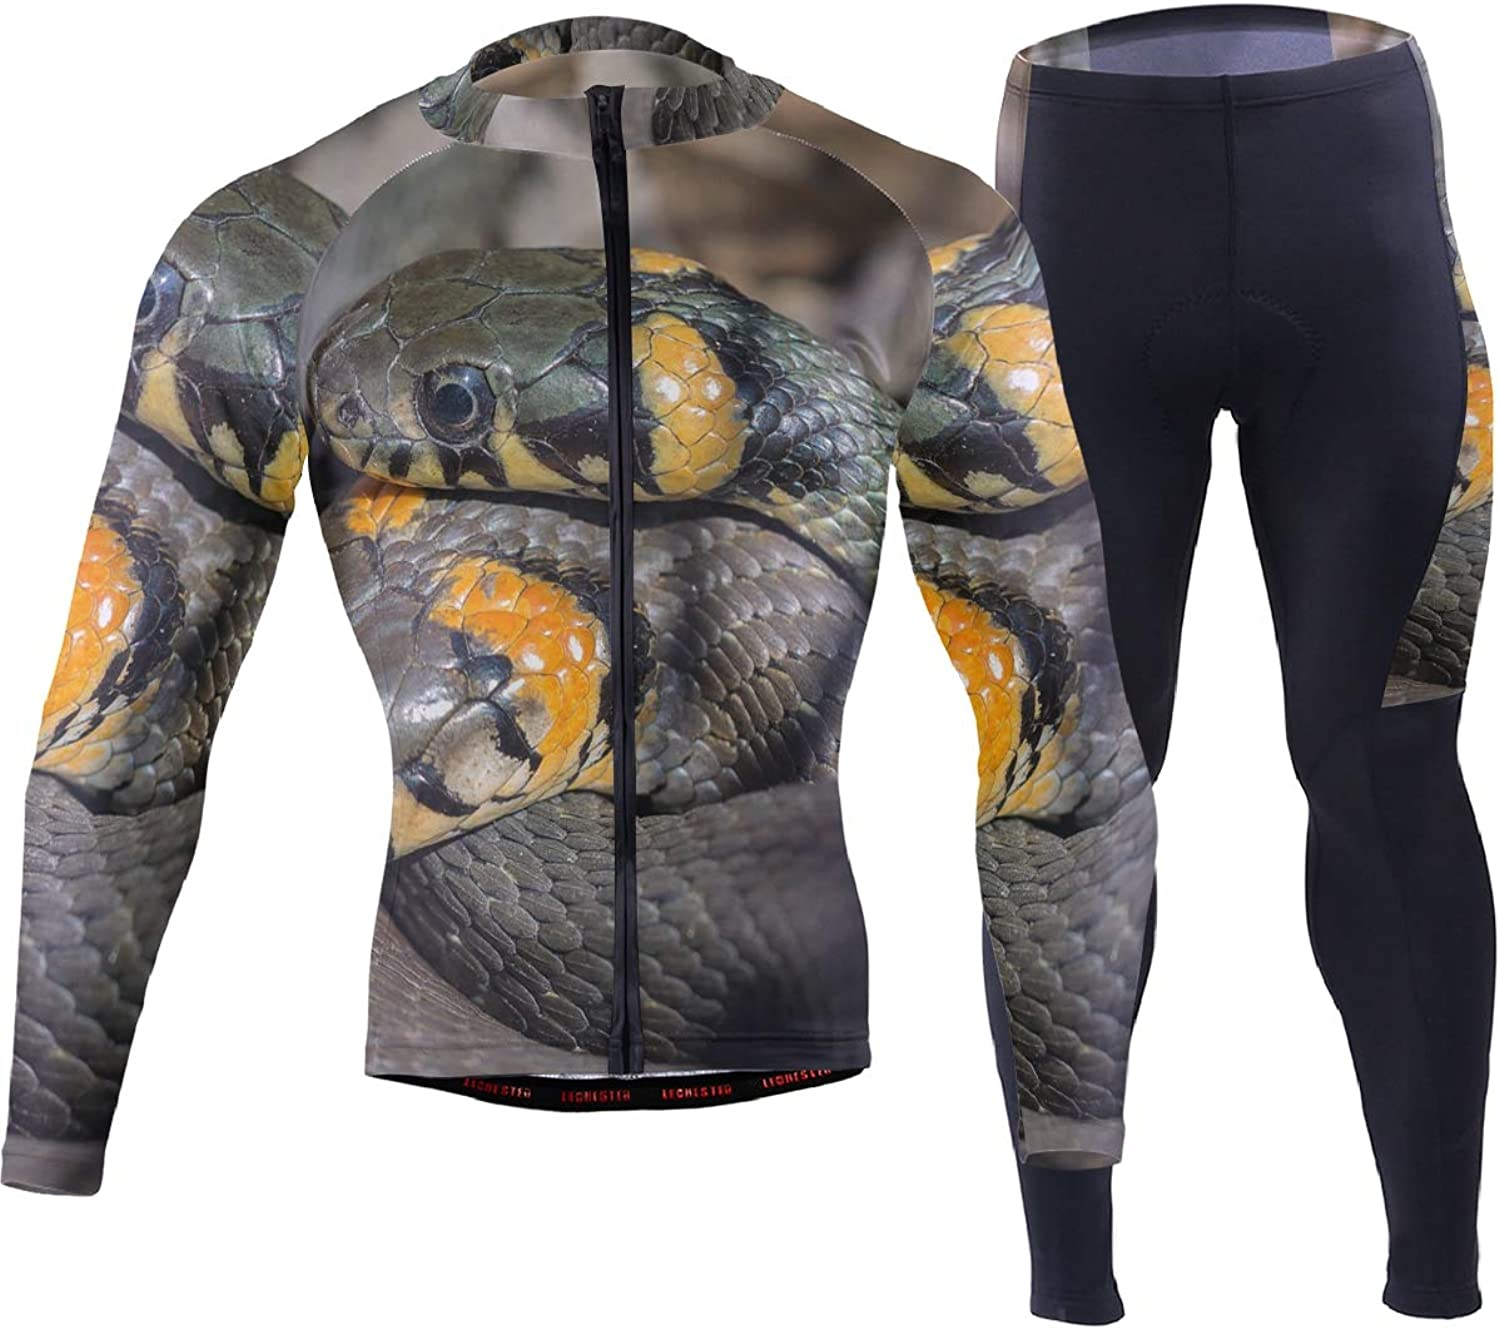 FAJRO Danger Snake Reptile Sportswear Suit Bike Outfit Set Breathable Quick Dry 3D Padded Pants